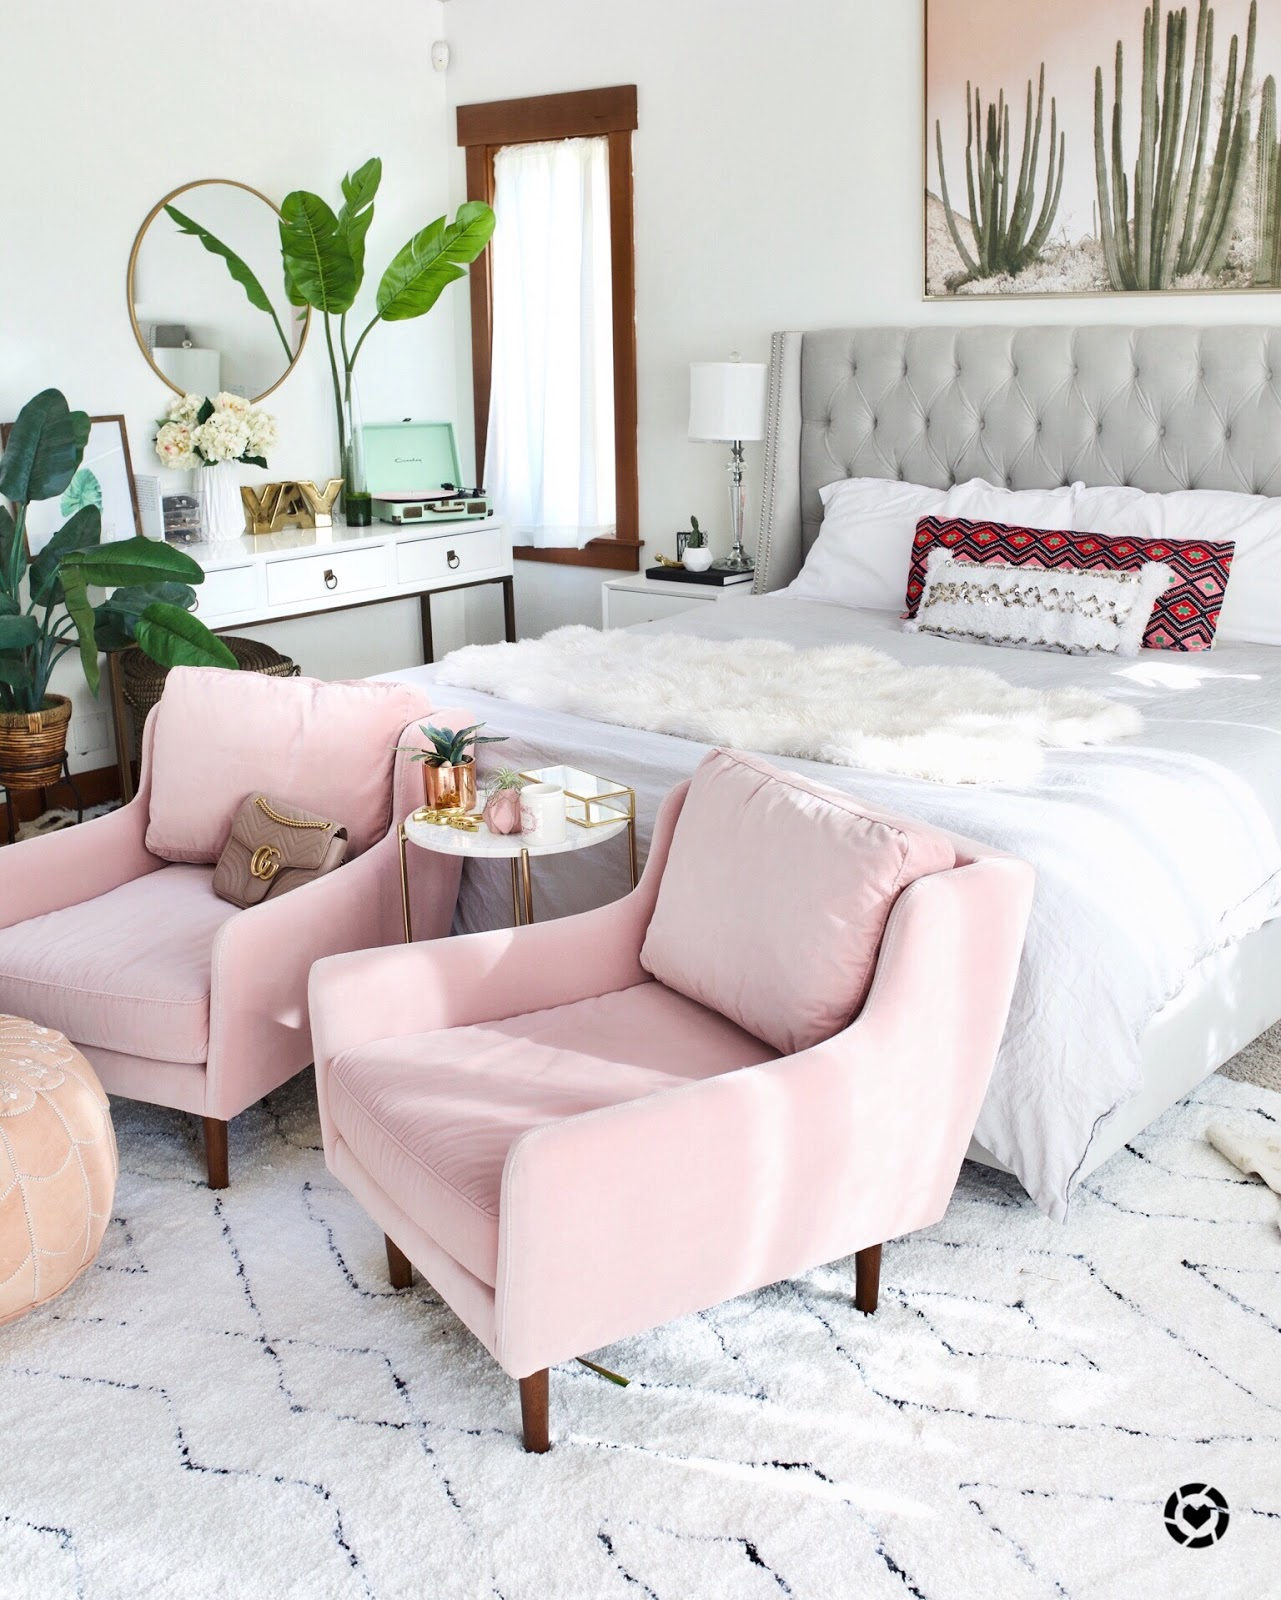 Blush Pink Chairs